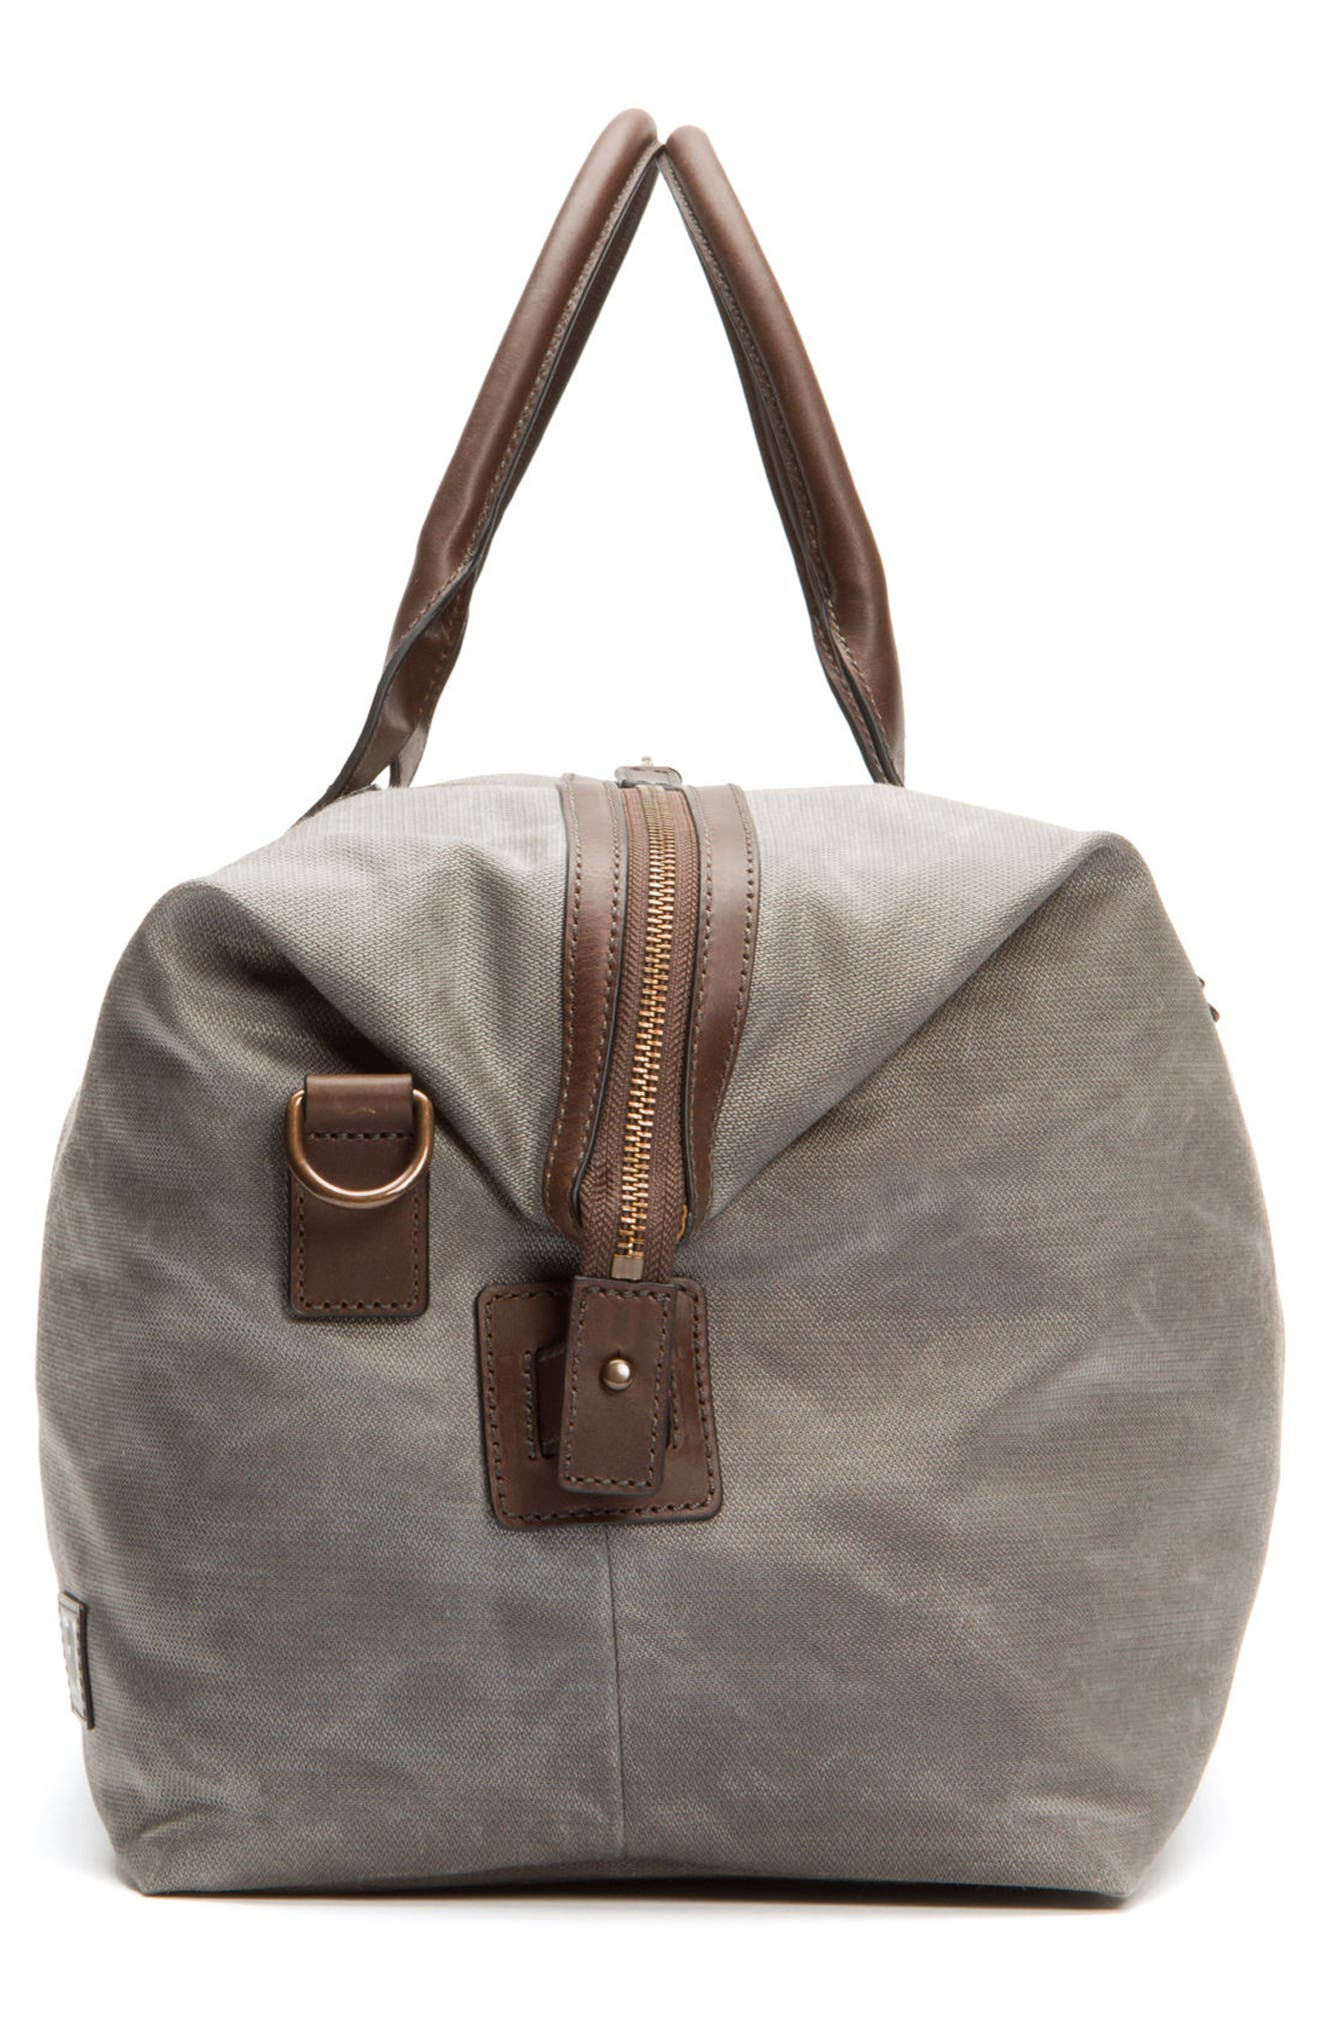 Carter Duffel Bag,                             Alternate thumbnail 4, color,                             041